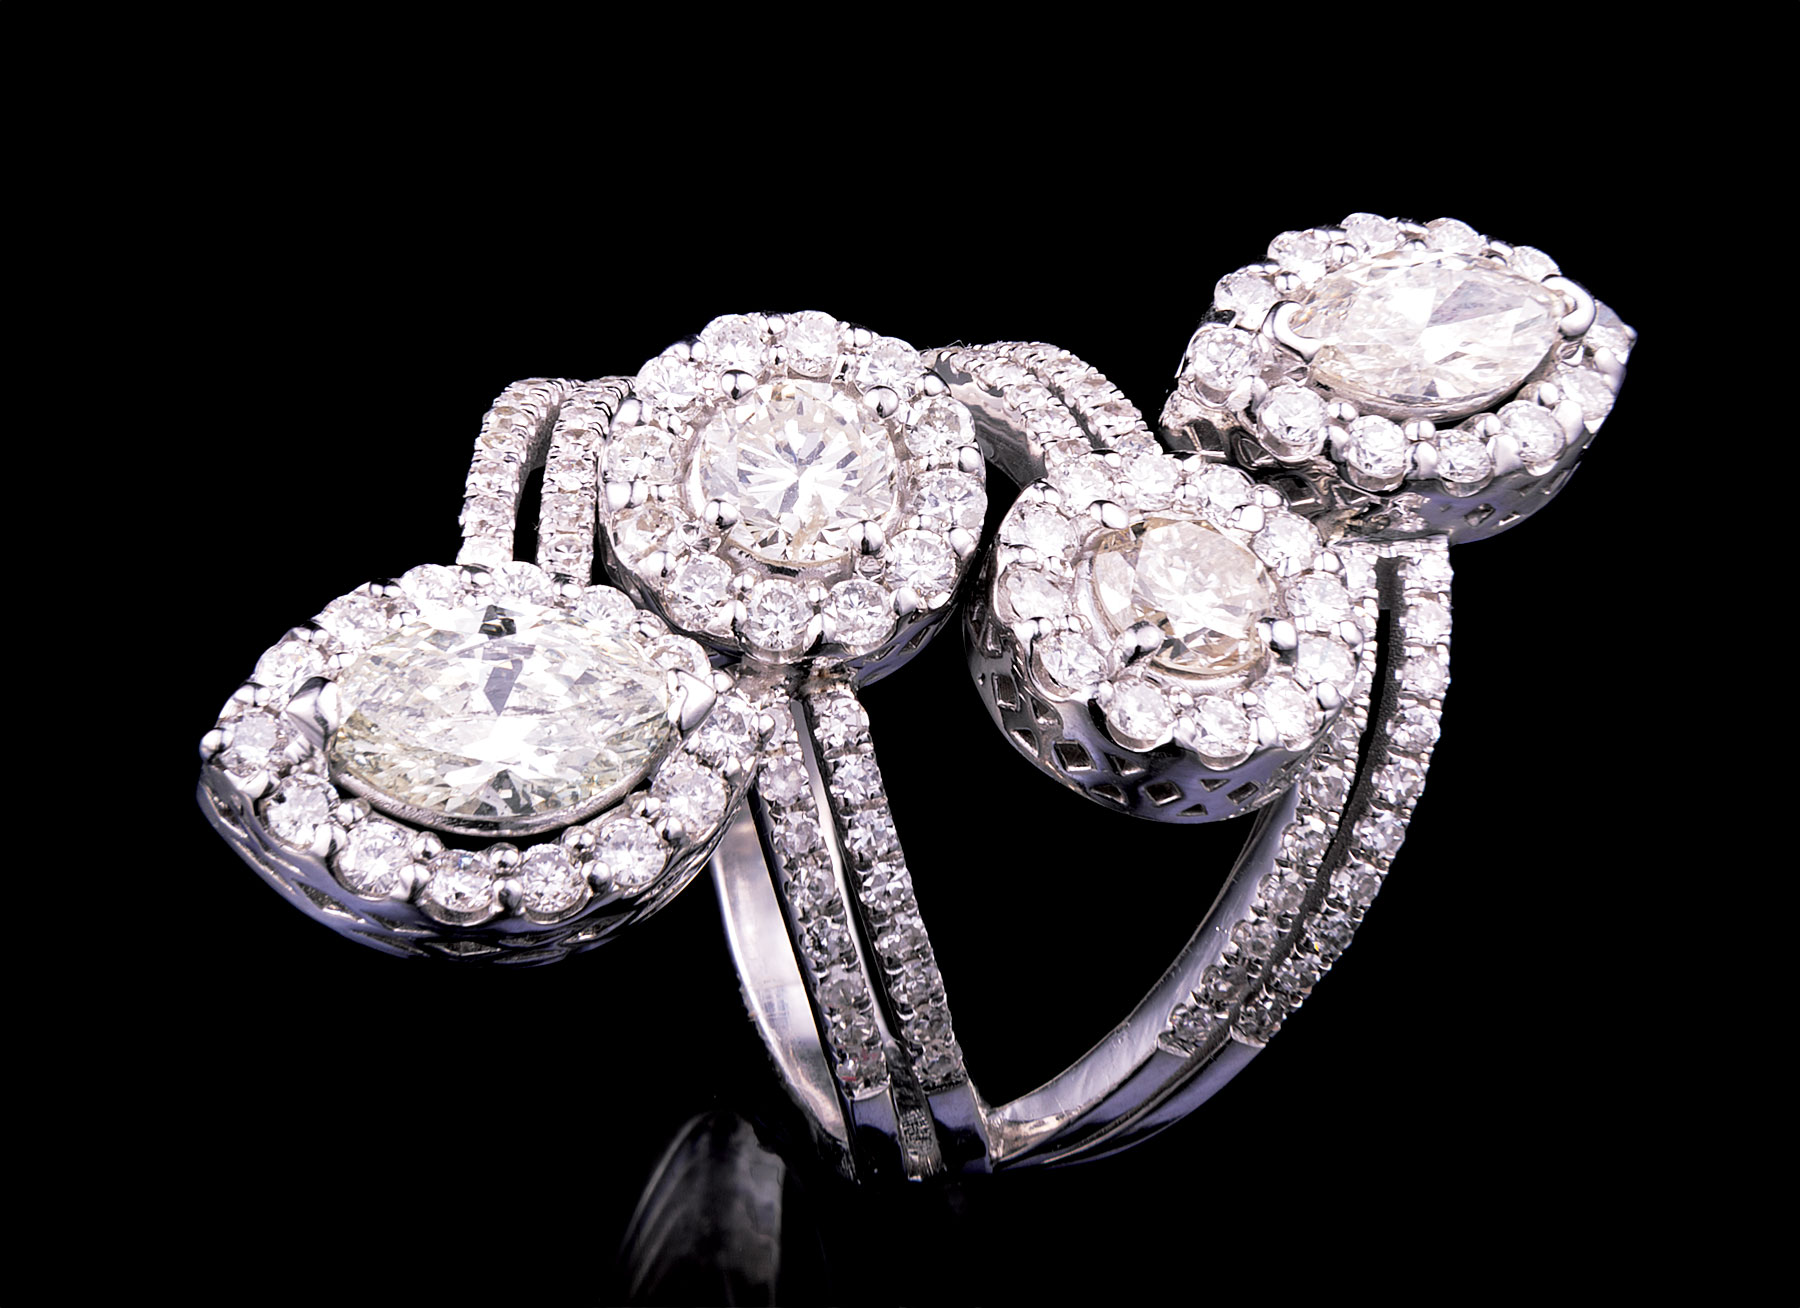 Lot 597 - 18 kt. White Gold and Diamond Four Row Ring , 2 marquise cut and 2 round brilliant cut diamonds,